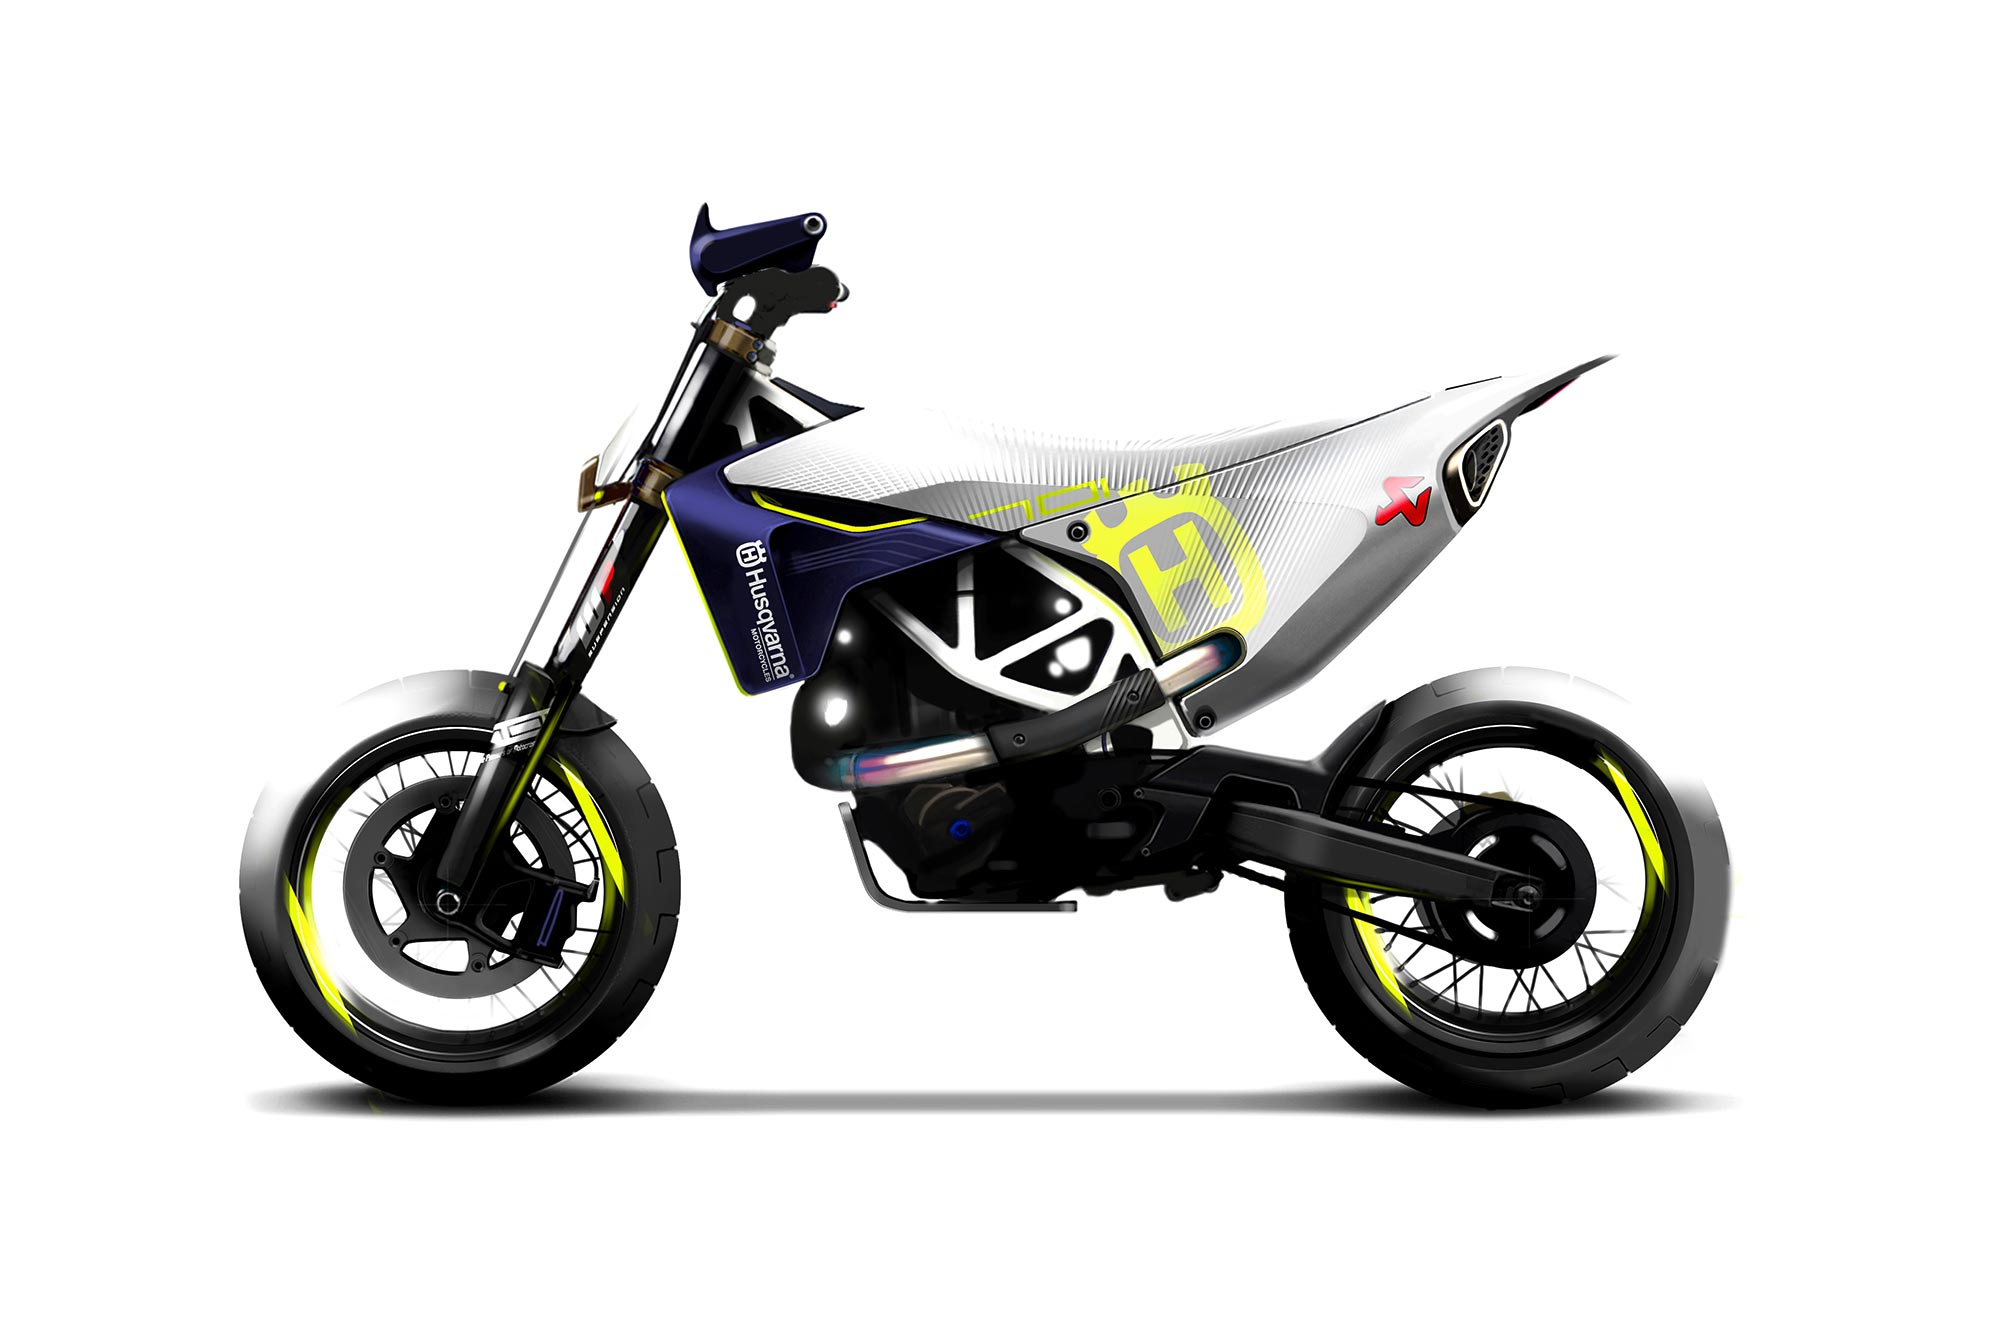 photos husqvarna 701 concept a future supermoto. Black Bedroom Furniture Sets. Home Design Ideas